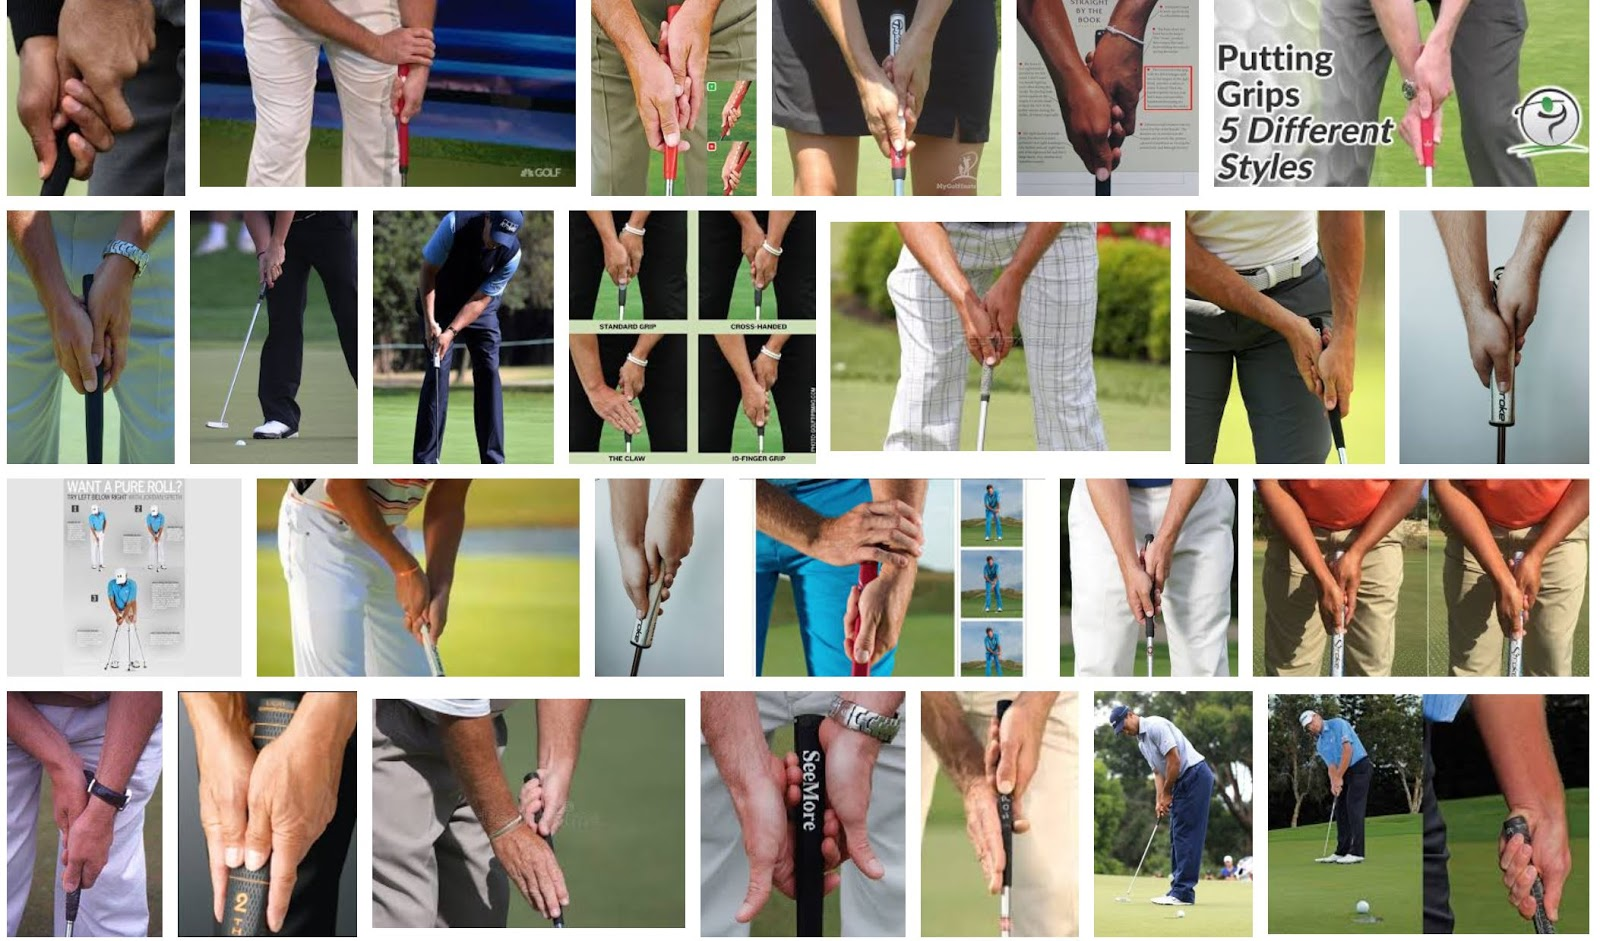 collage of different putting grips